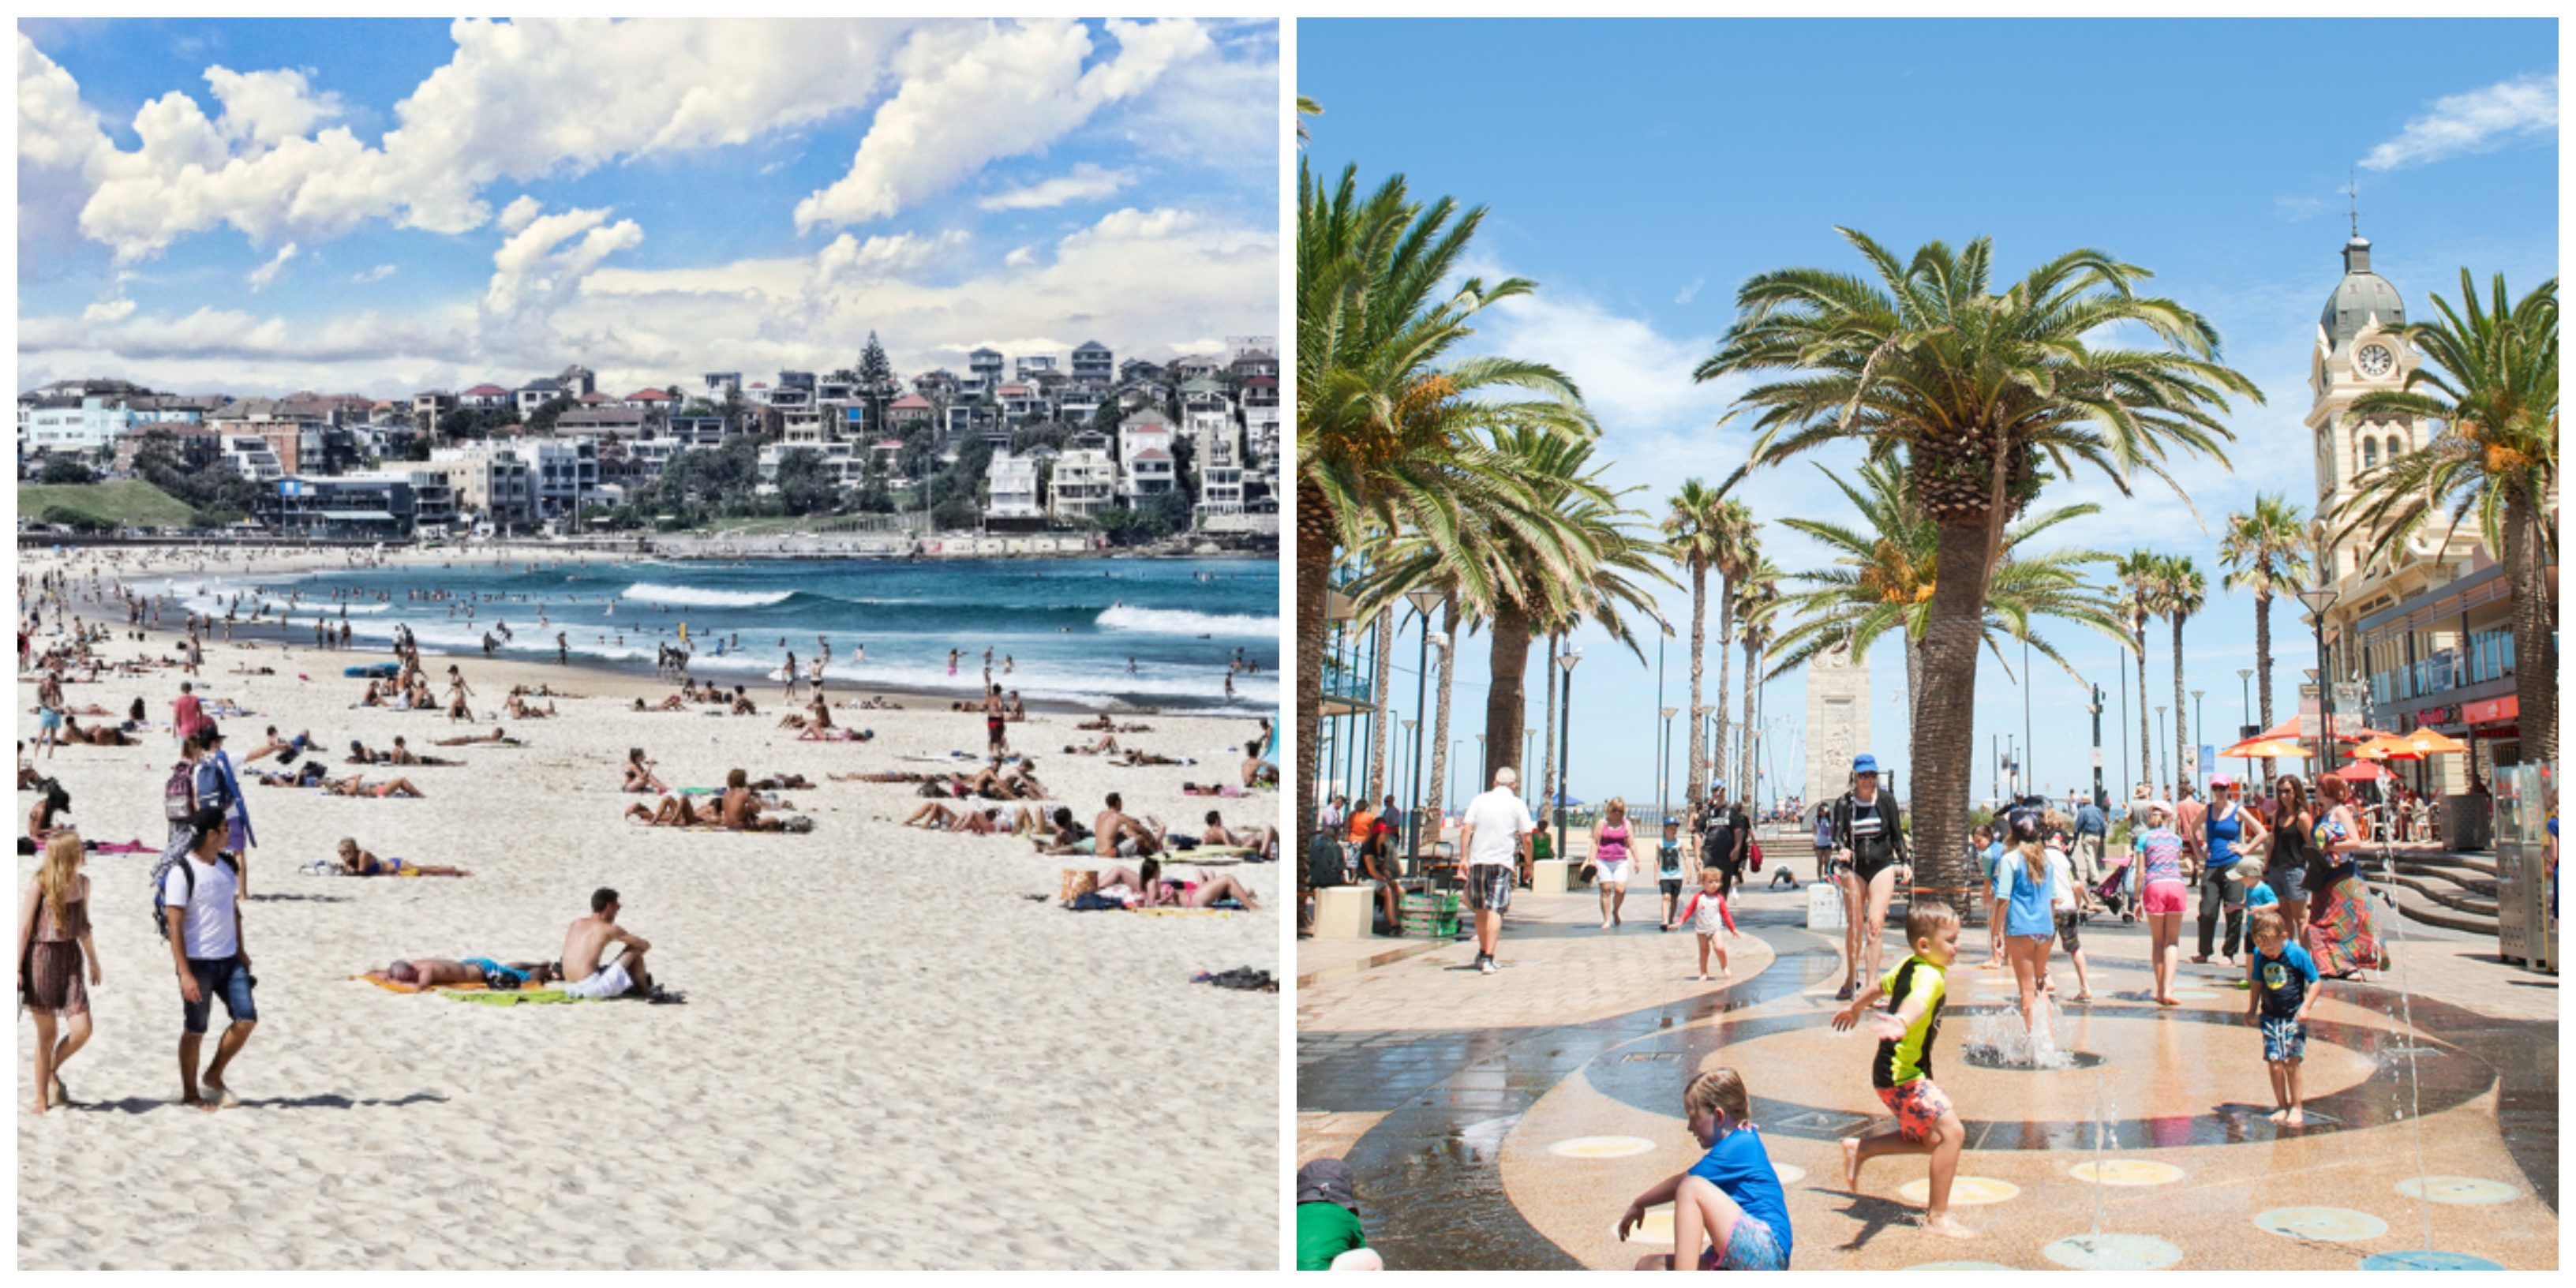 Sydney (5th) and Adelaide (10th) were the two other Australian cities to feature in the top-ranked list.